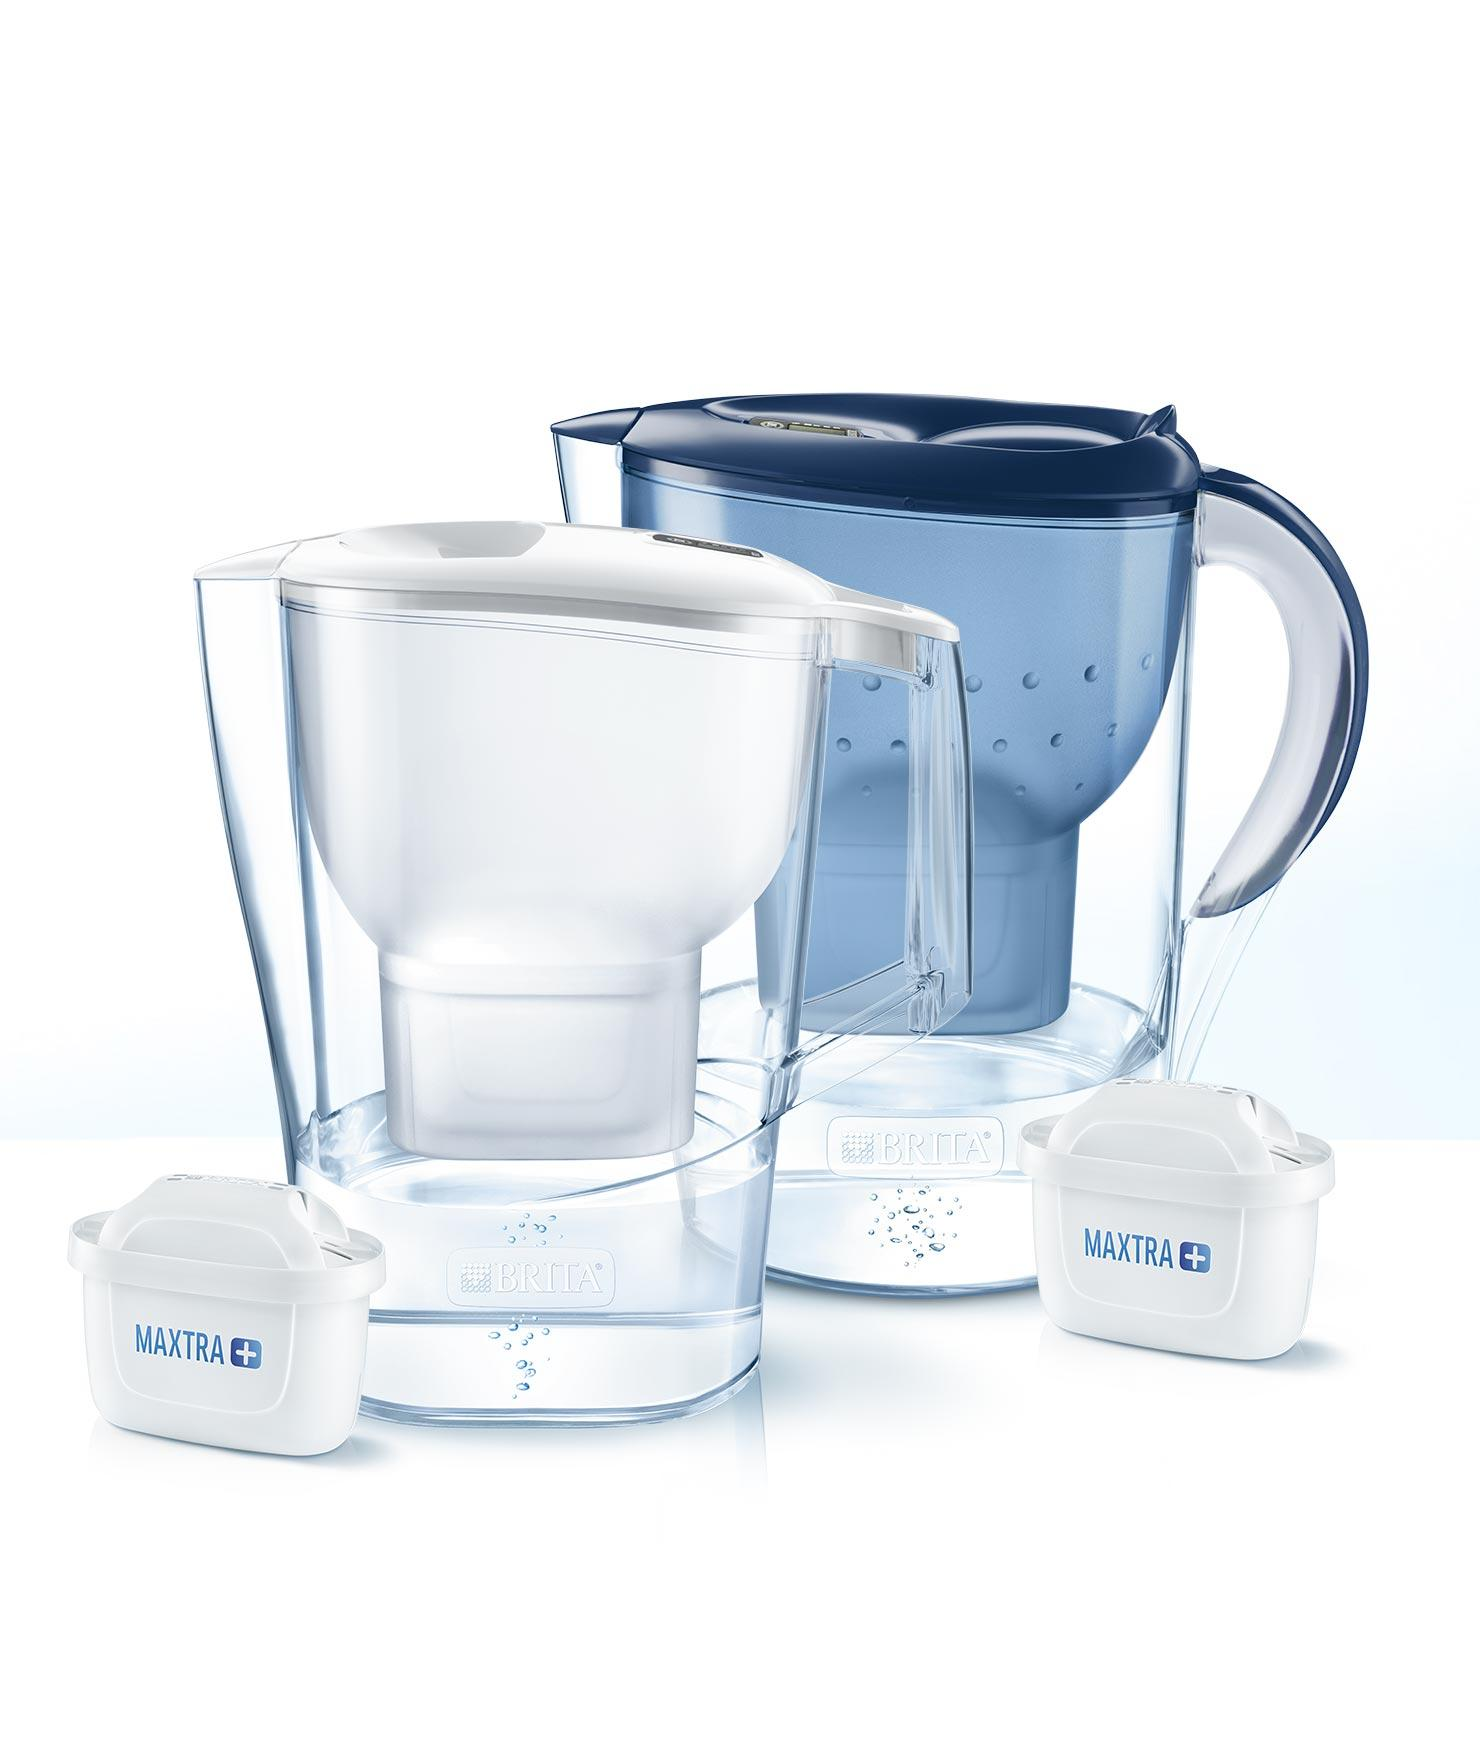 BRITA MAXTRA+: Packaging detail